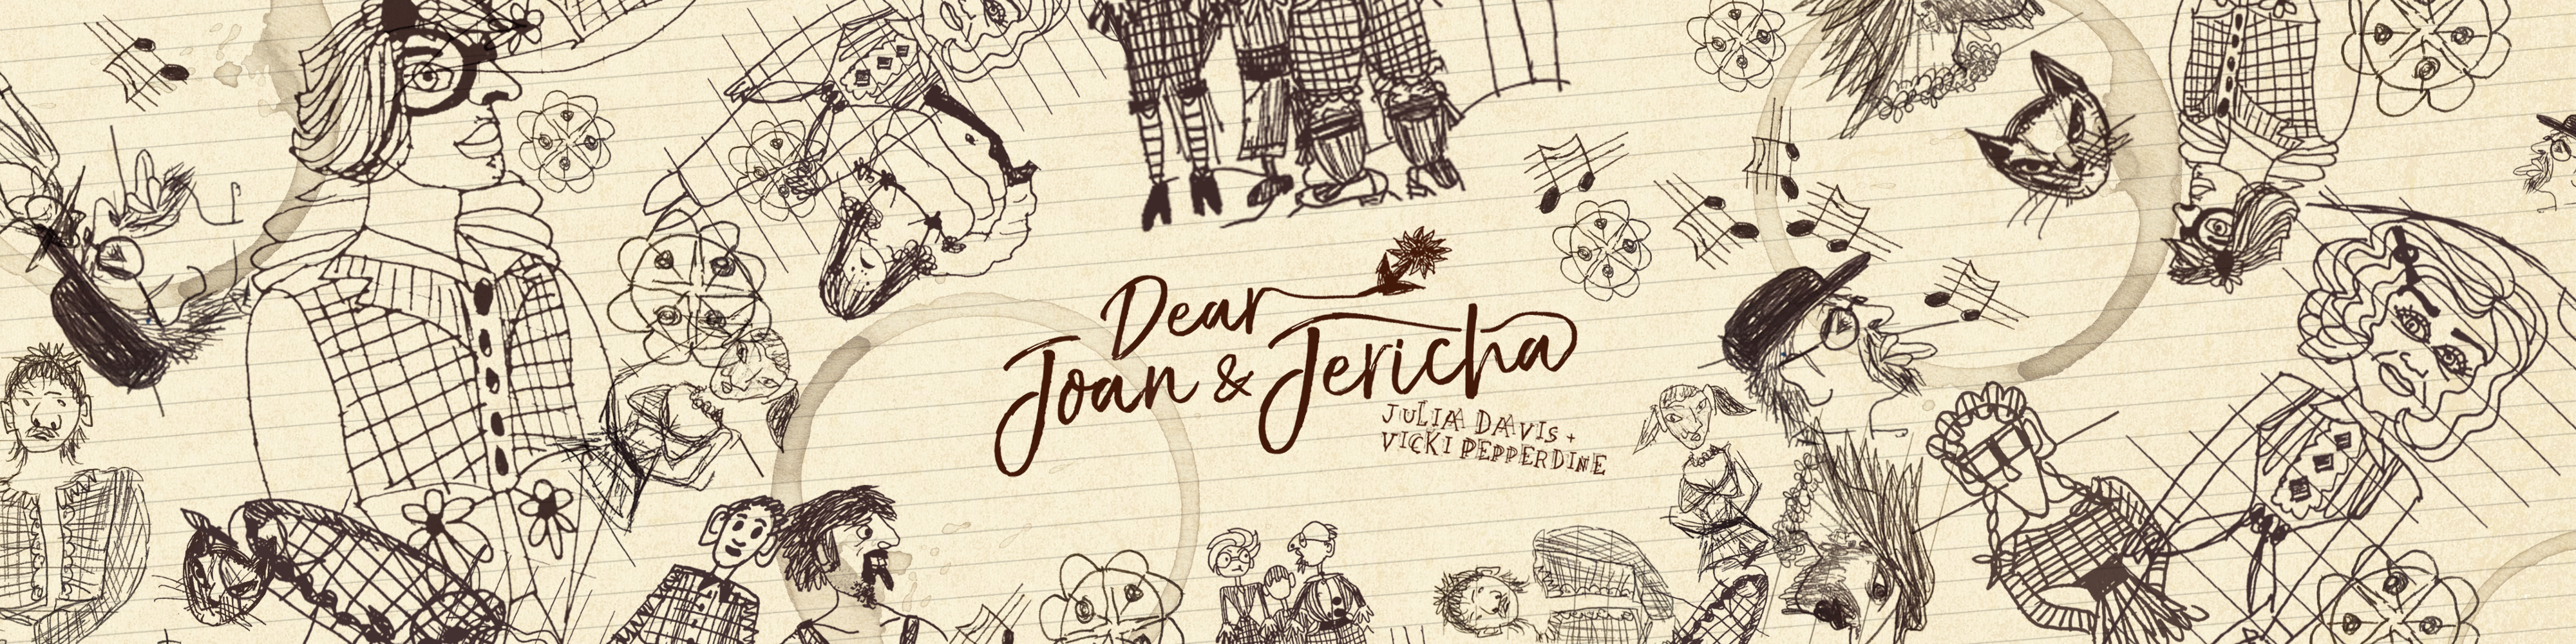 Dear Joan & Jericha: a VERY revealing conversation about their podcasting  journey | by Acast: For The Stories. | Acast | Medium